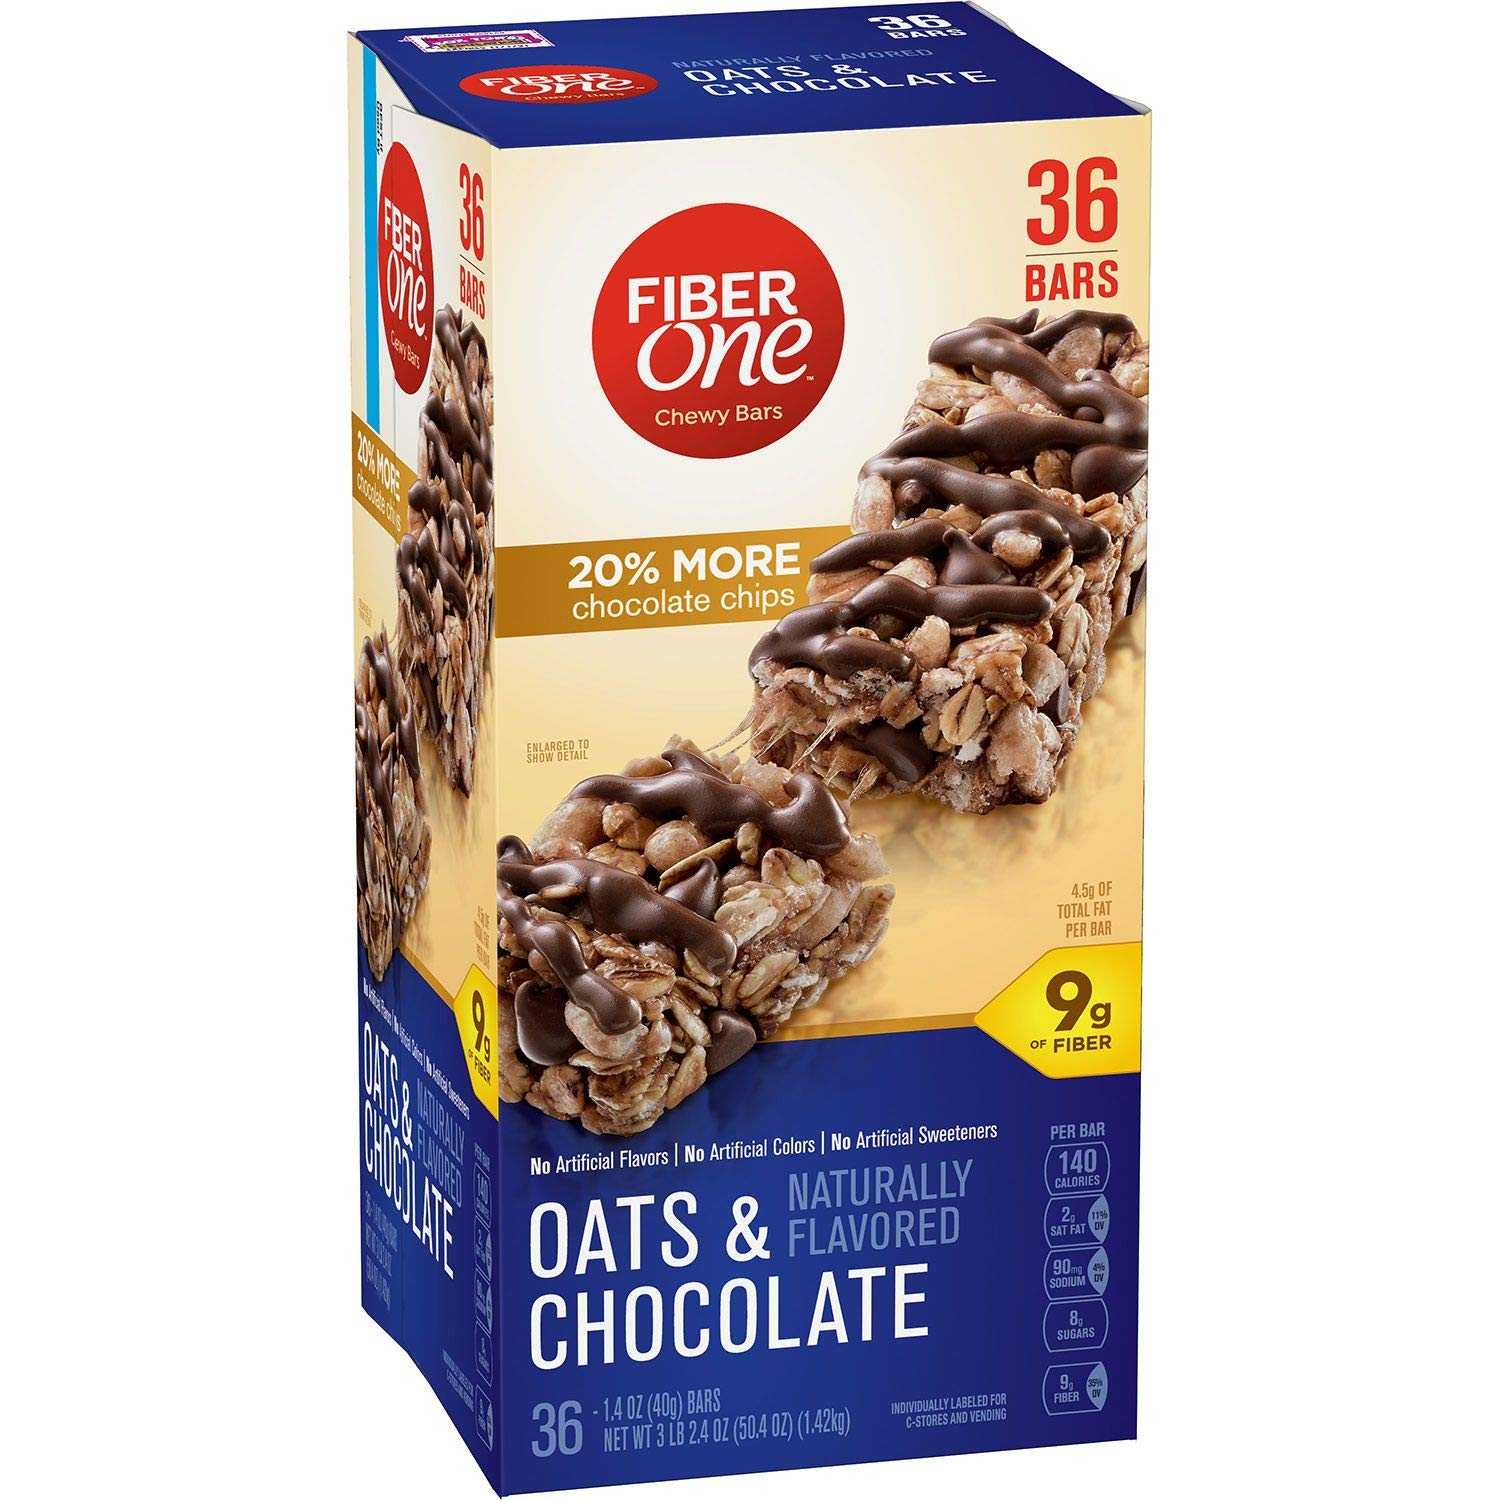 Fiber One Oats and Chocolate Chewy Bars - 20% More Chocolate Chips - 36 Bars by Fiber One